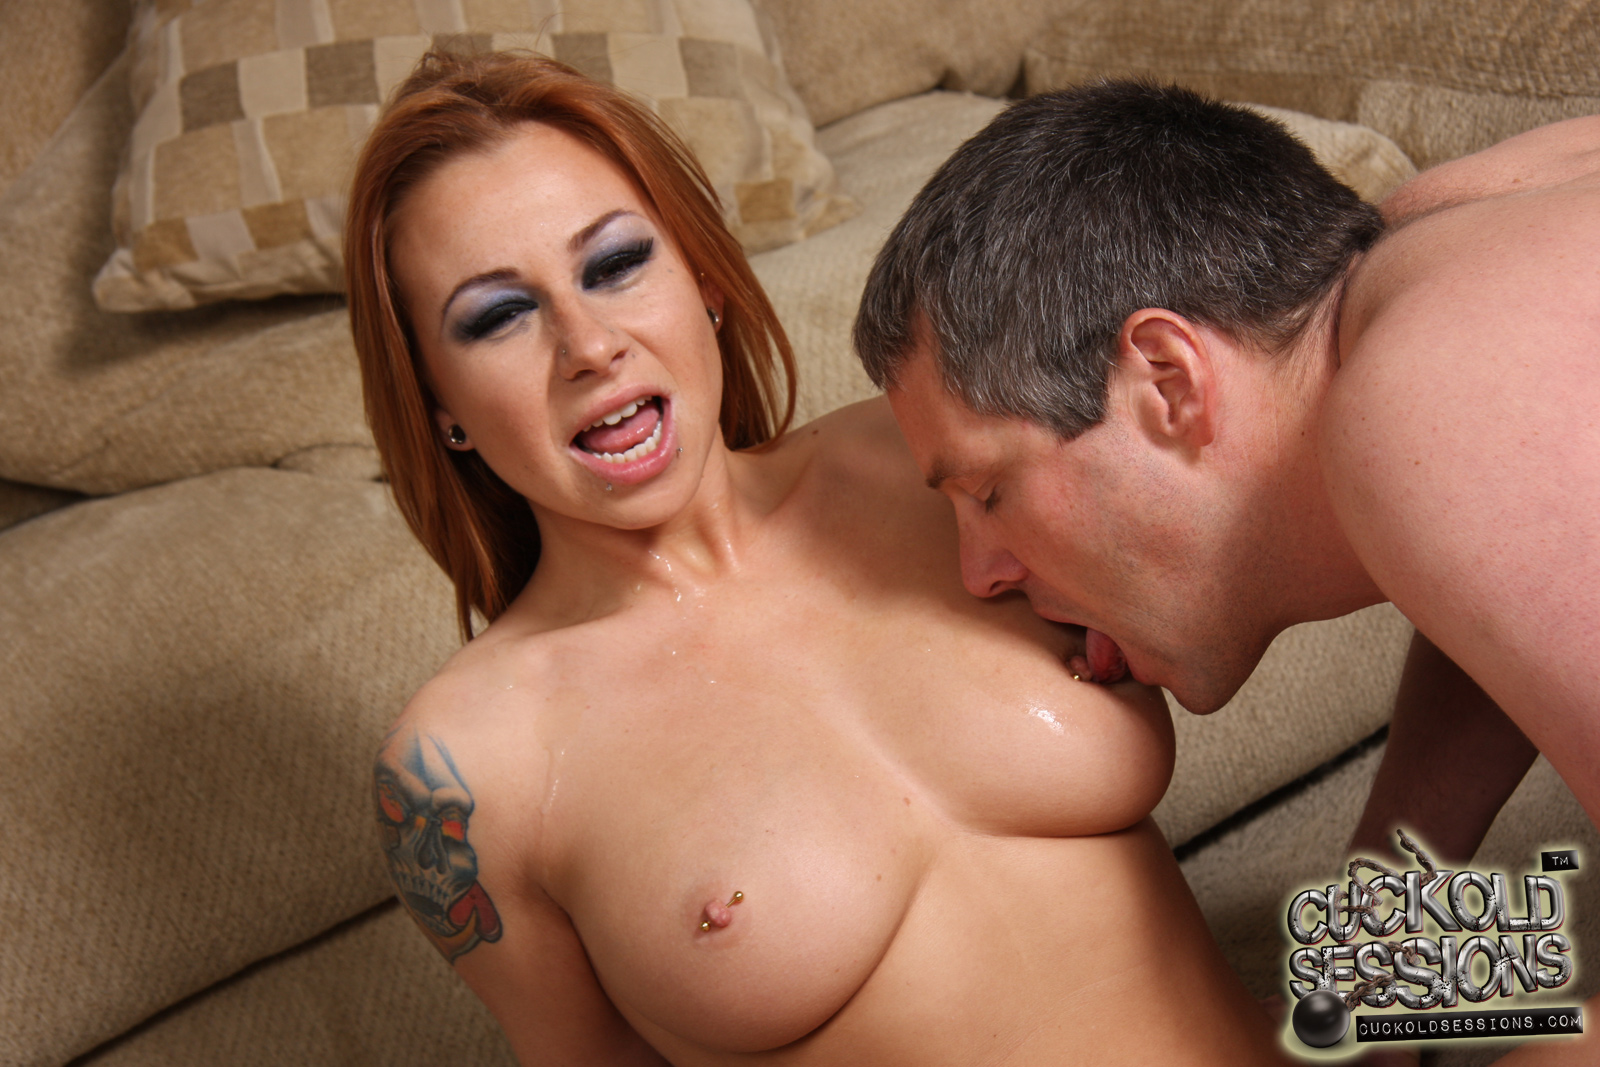 galleries cuckoldsessions content scarlett pain pic 30